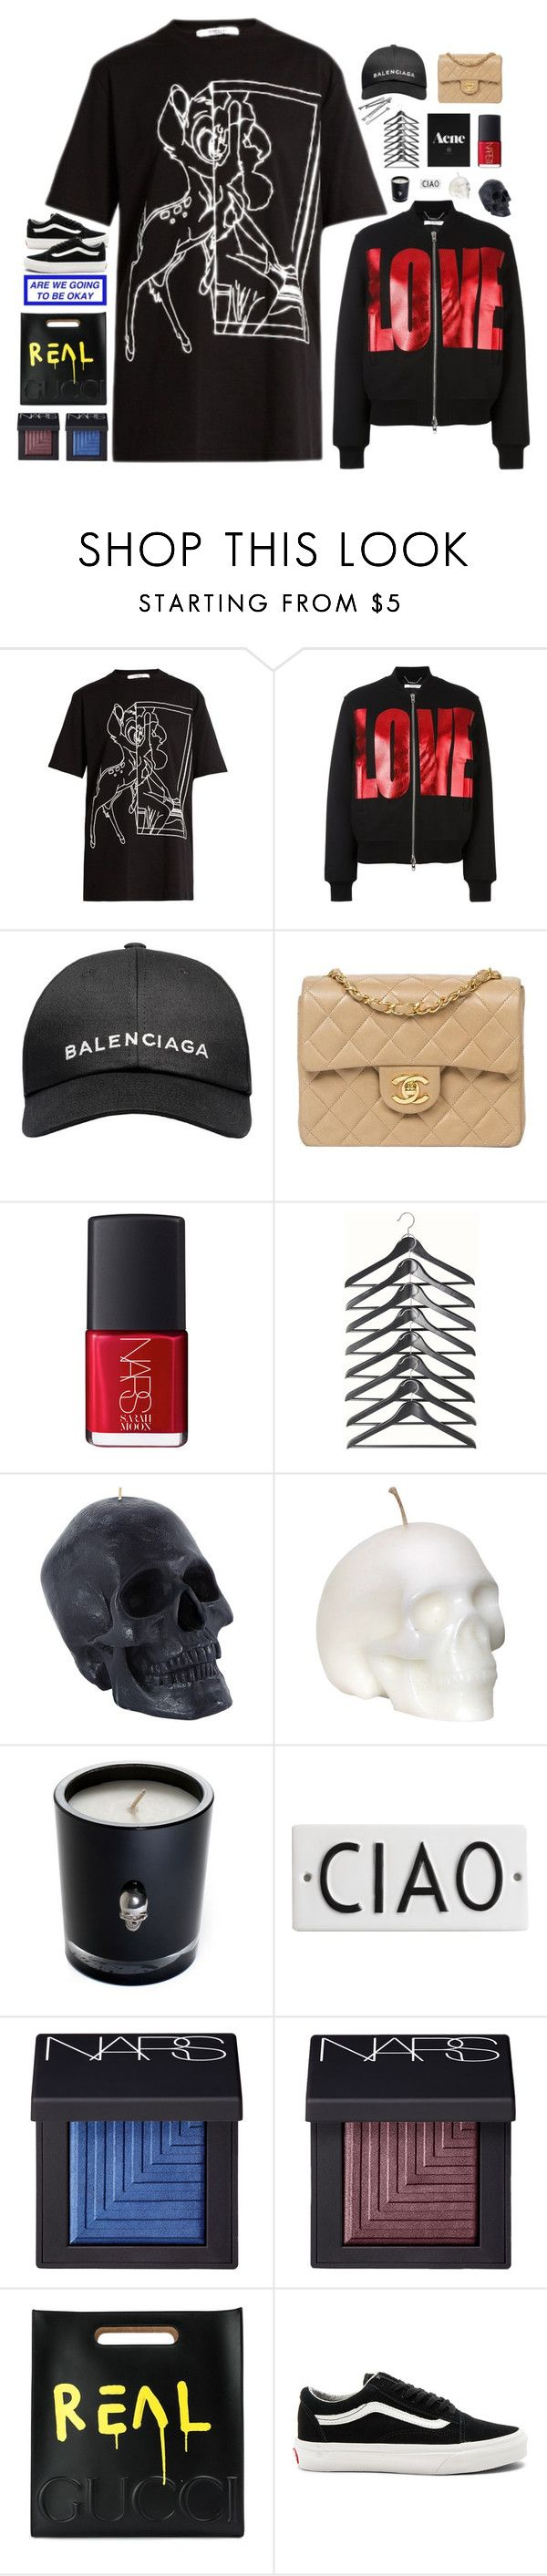 """""""bless up"""" by lanadelnotyou ❤ liked on Polyvore featuring Givenchy, Balenciaga, Chanel, NARS Cosmetics, Lisa Carrier, Rosanna, BOBBY, Gucci, Vans and aneesastopsets"""